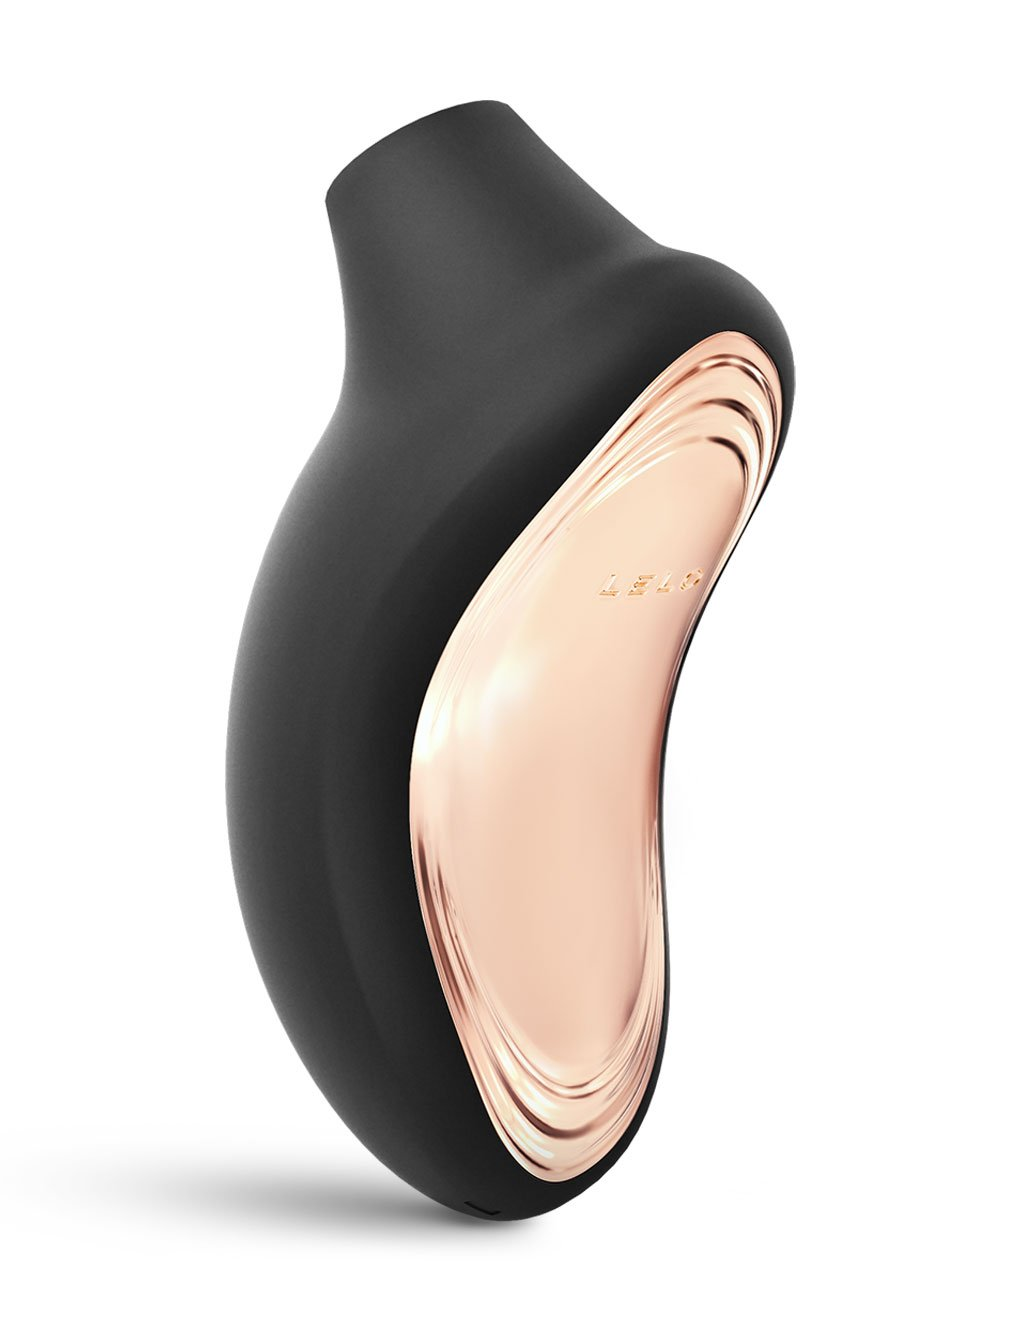 Lelo Sona 2 Sonic Clitoral Massager- Black- Back